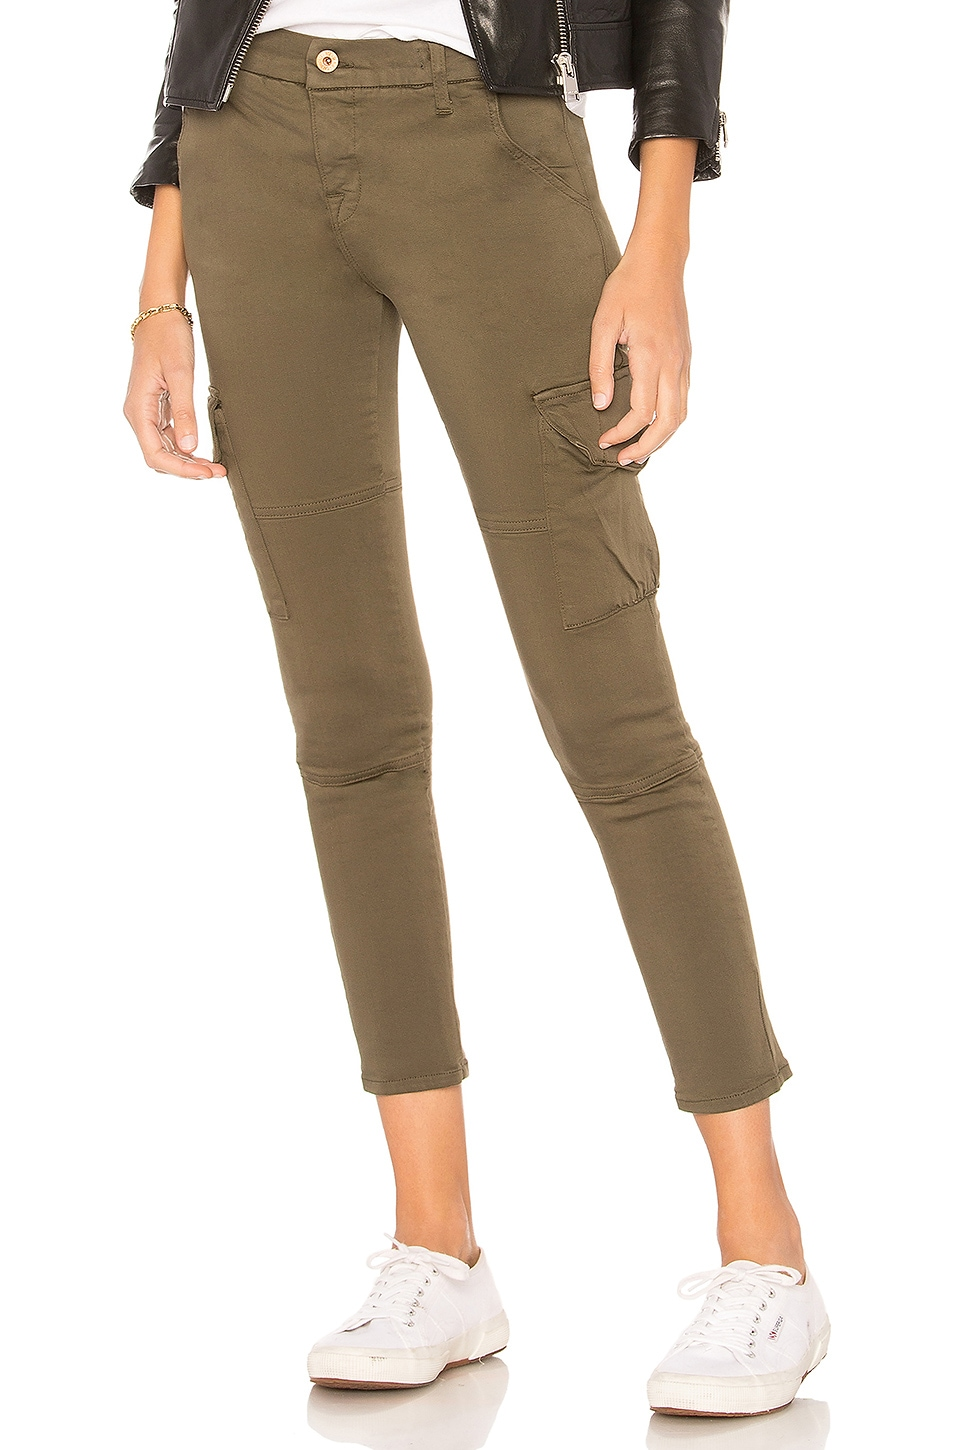 NSF Vincent Cargo Pant in Drab